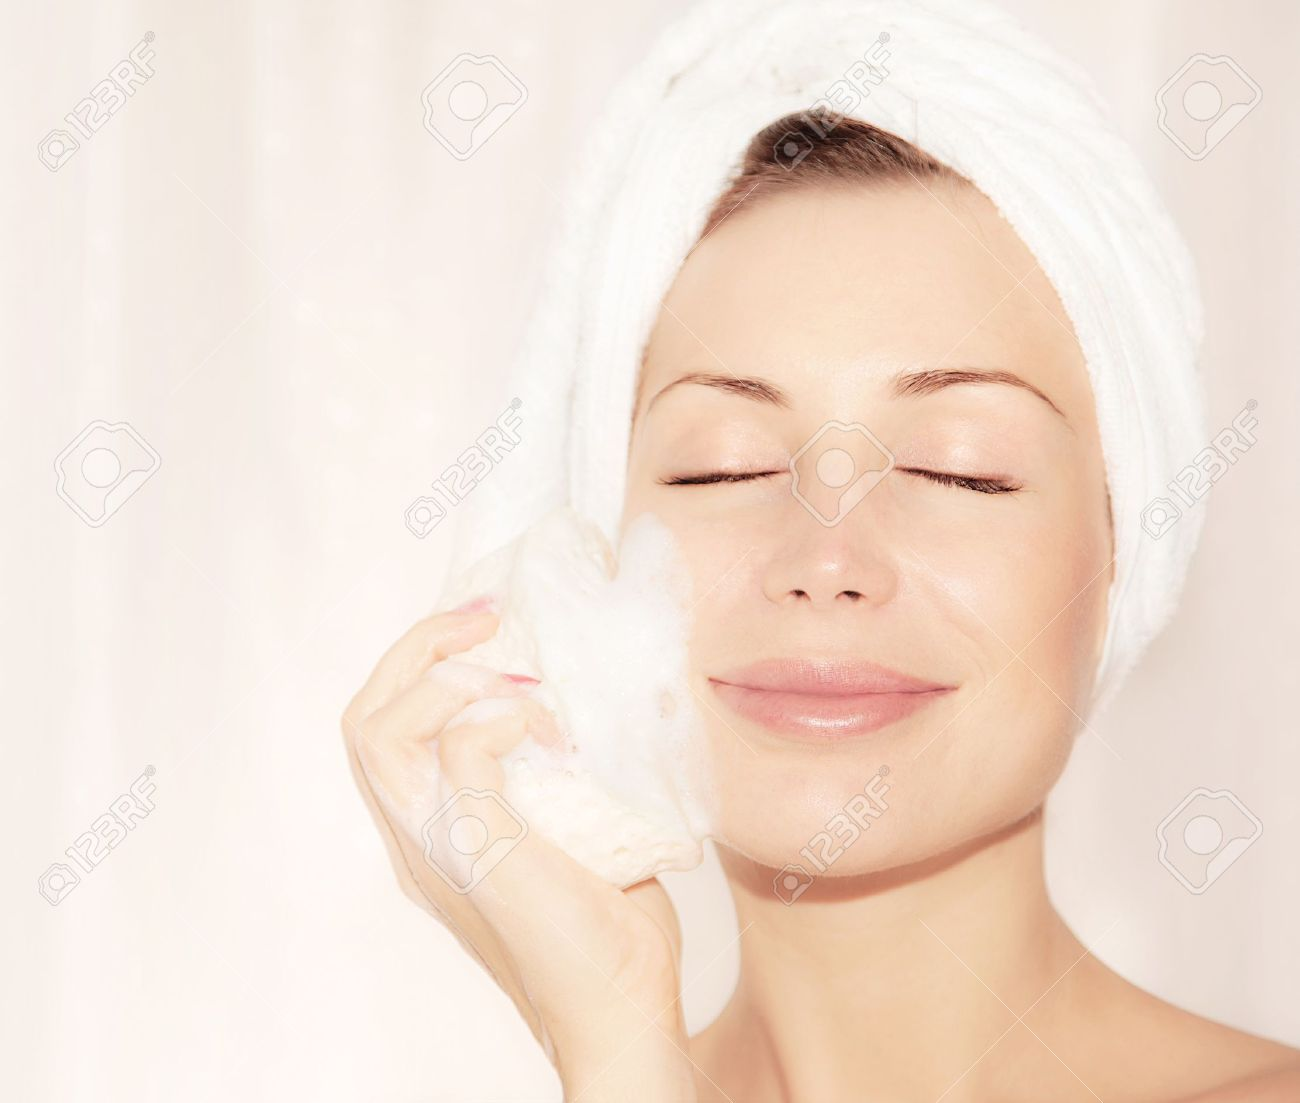 Healthy happy girl taking bath, beautiful young female cleaning face skin,  portrait over soft light background, hygiene and day spa Stock Photo - 10993934